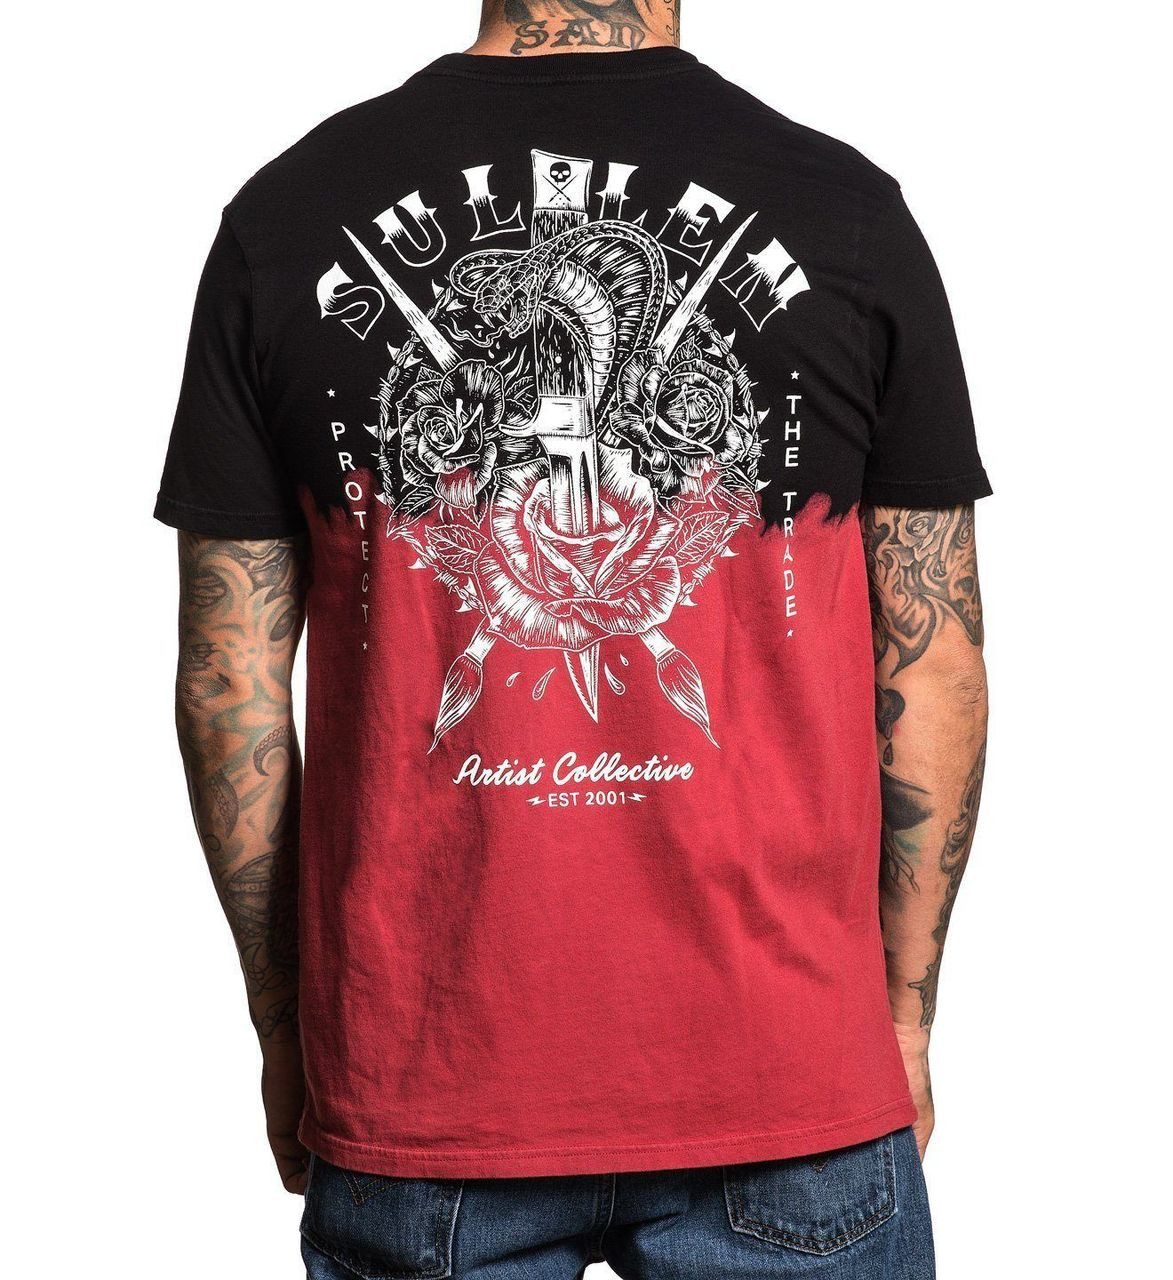 Sullen Art Collective Clothing Cobra Snake Blood Roses Tattooed T ...